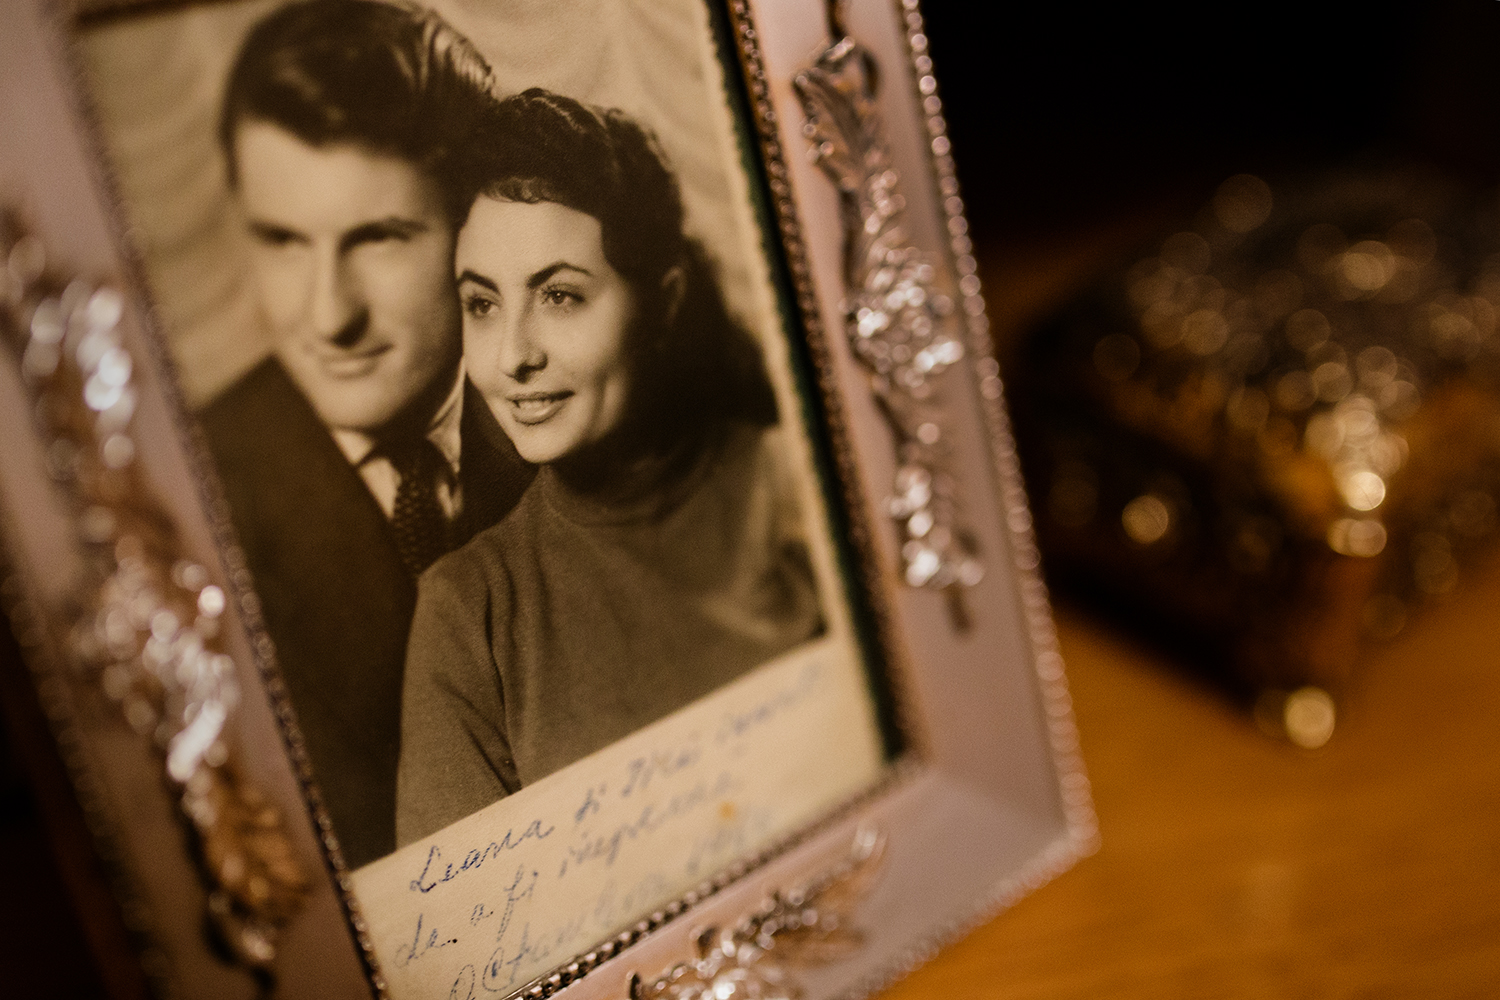 photo-with-my-grandmother-and-grandfather-back-when-they-were-younger-romania-documentary-photography